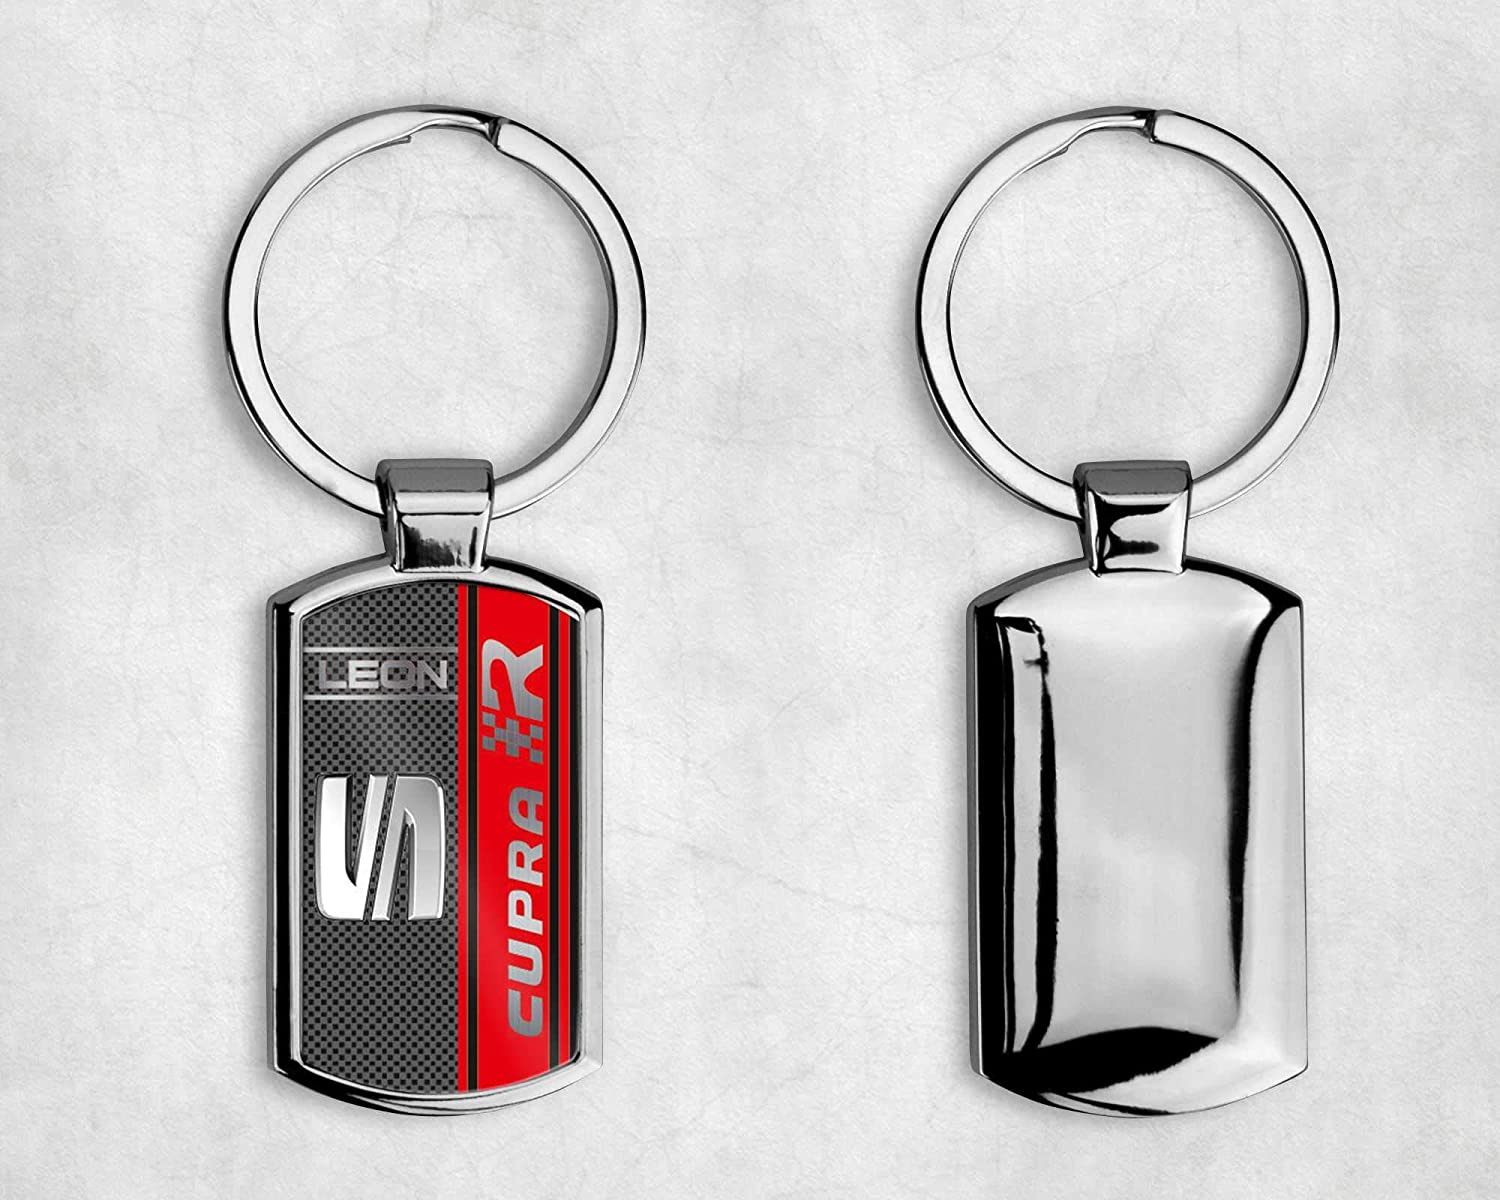 T20 DESIGNS SEAT CAR LOGO METAL KEYRING IBIZA LEON ATECA Complete with Gift Box -A002 All Models